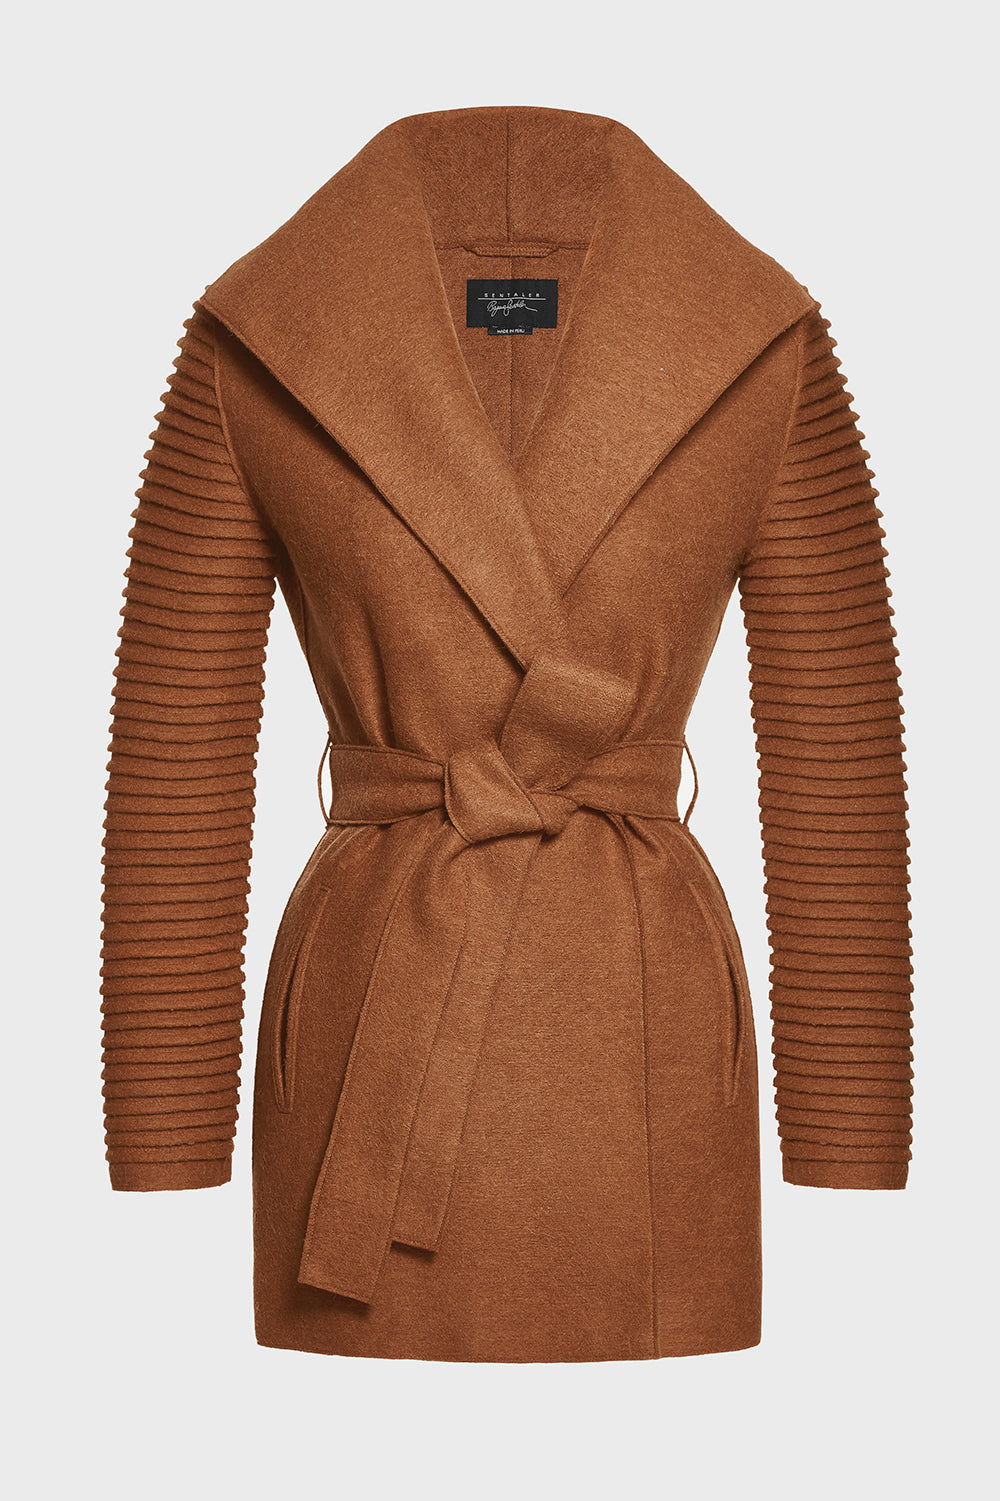 Sentaler Wrap Coat with Ribbed Sleeves featured in Superfine Alpaca and available in Dark Camel. Seen off model.